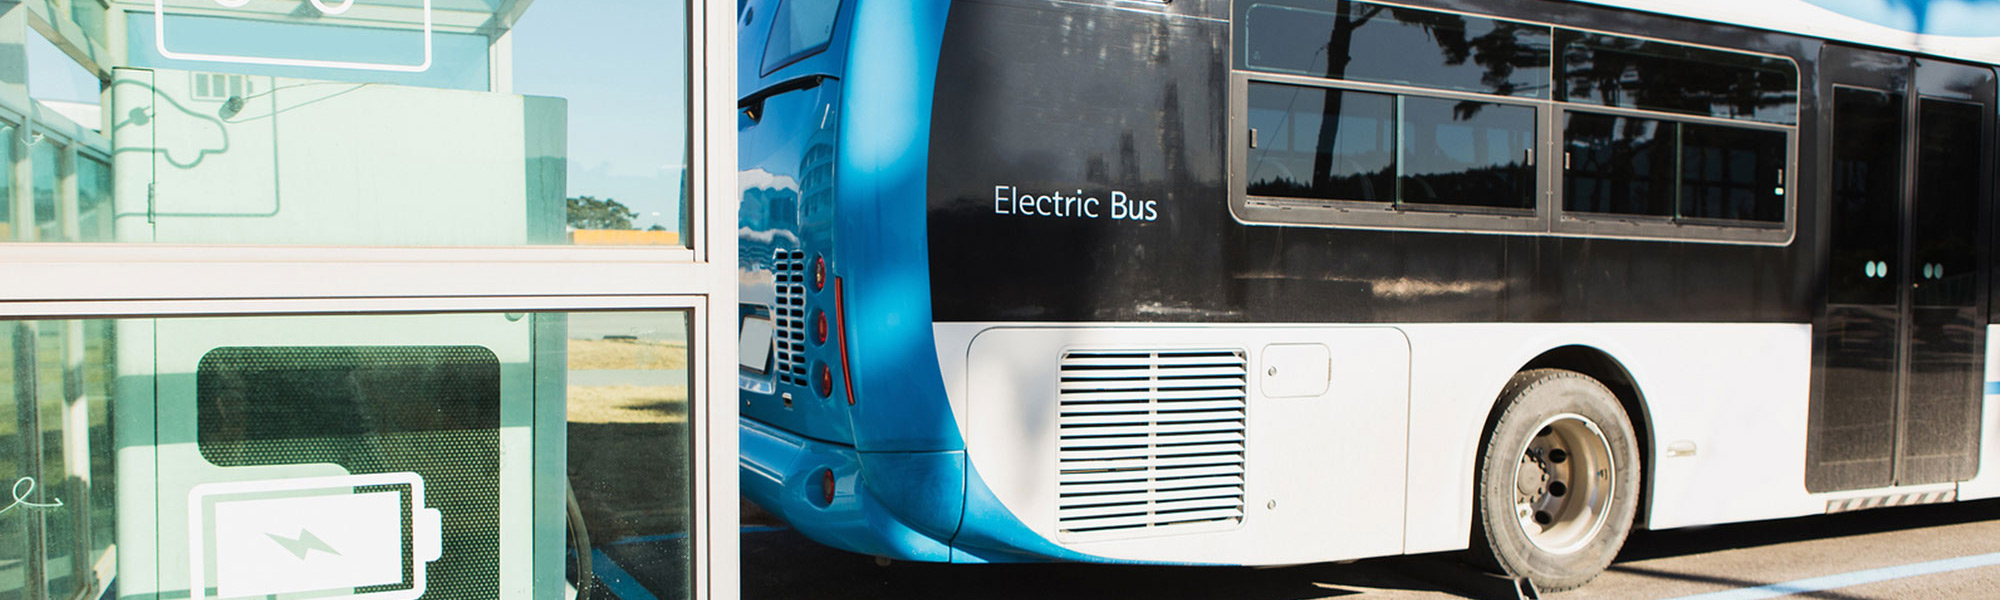 Electric Buses and Trucks